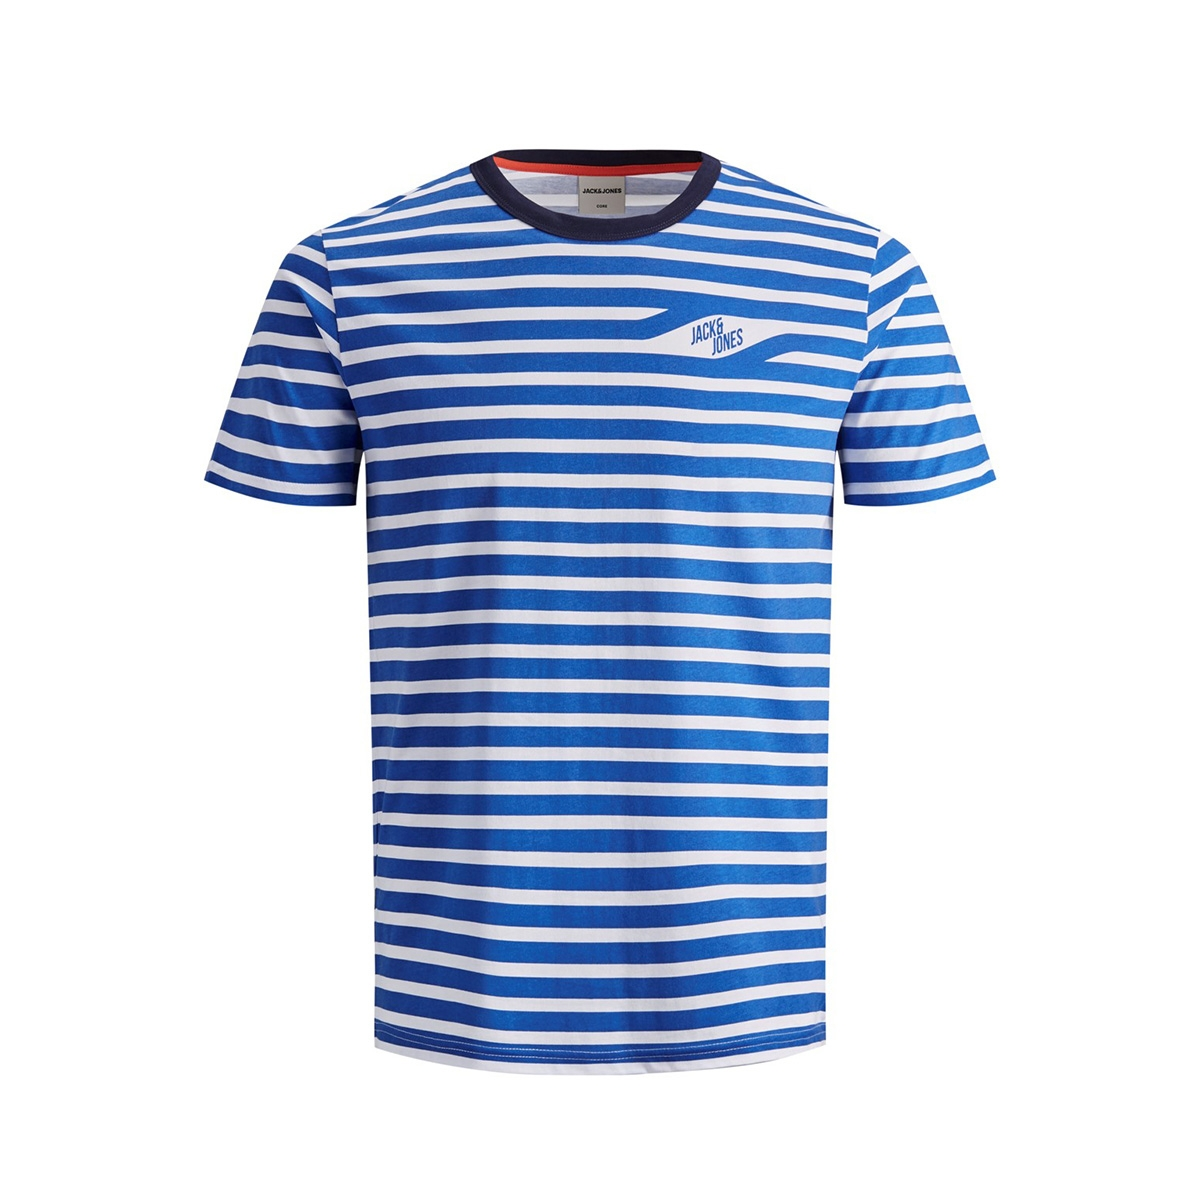 jcocraig tee ss crew neck 12155072 jack & jones t-shirt victoria blue/slim